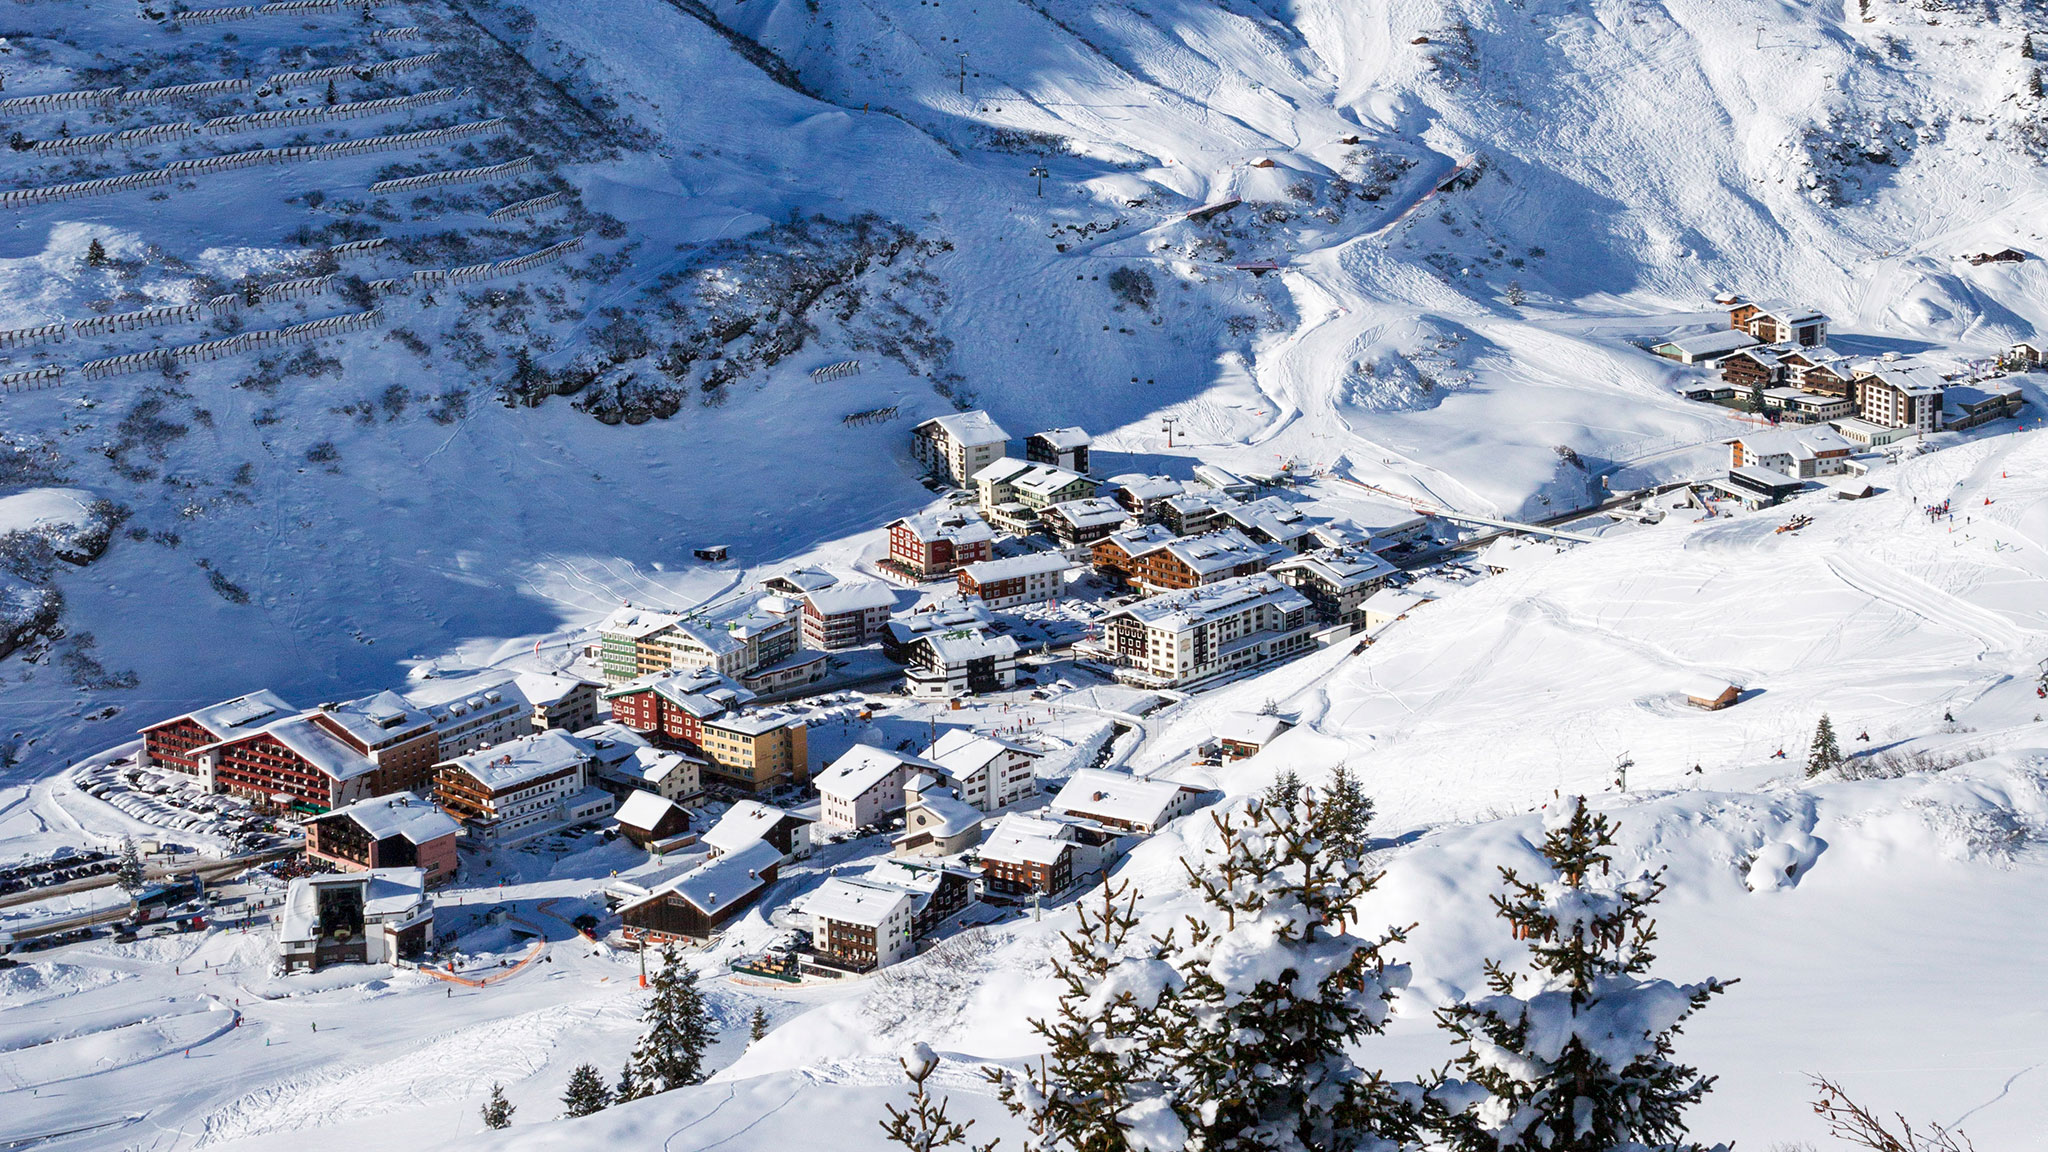 lech the good times roll: austrian ski resort's mini building boom